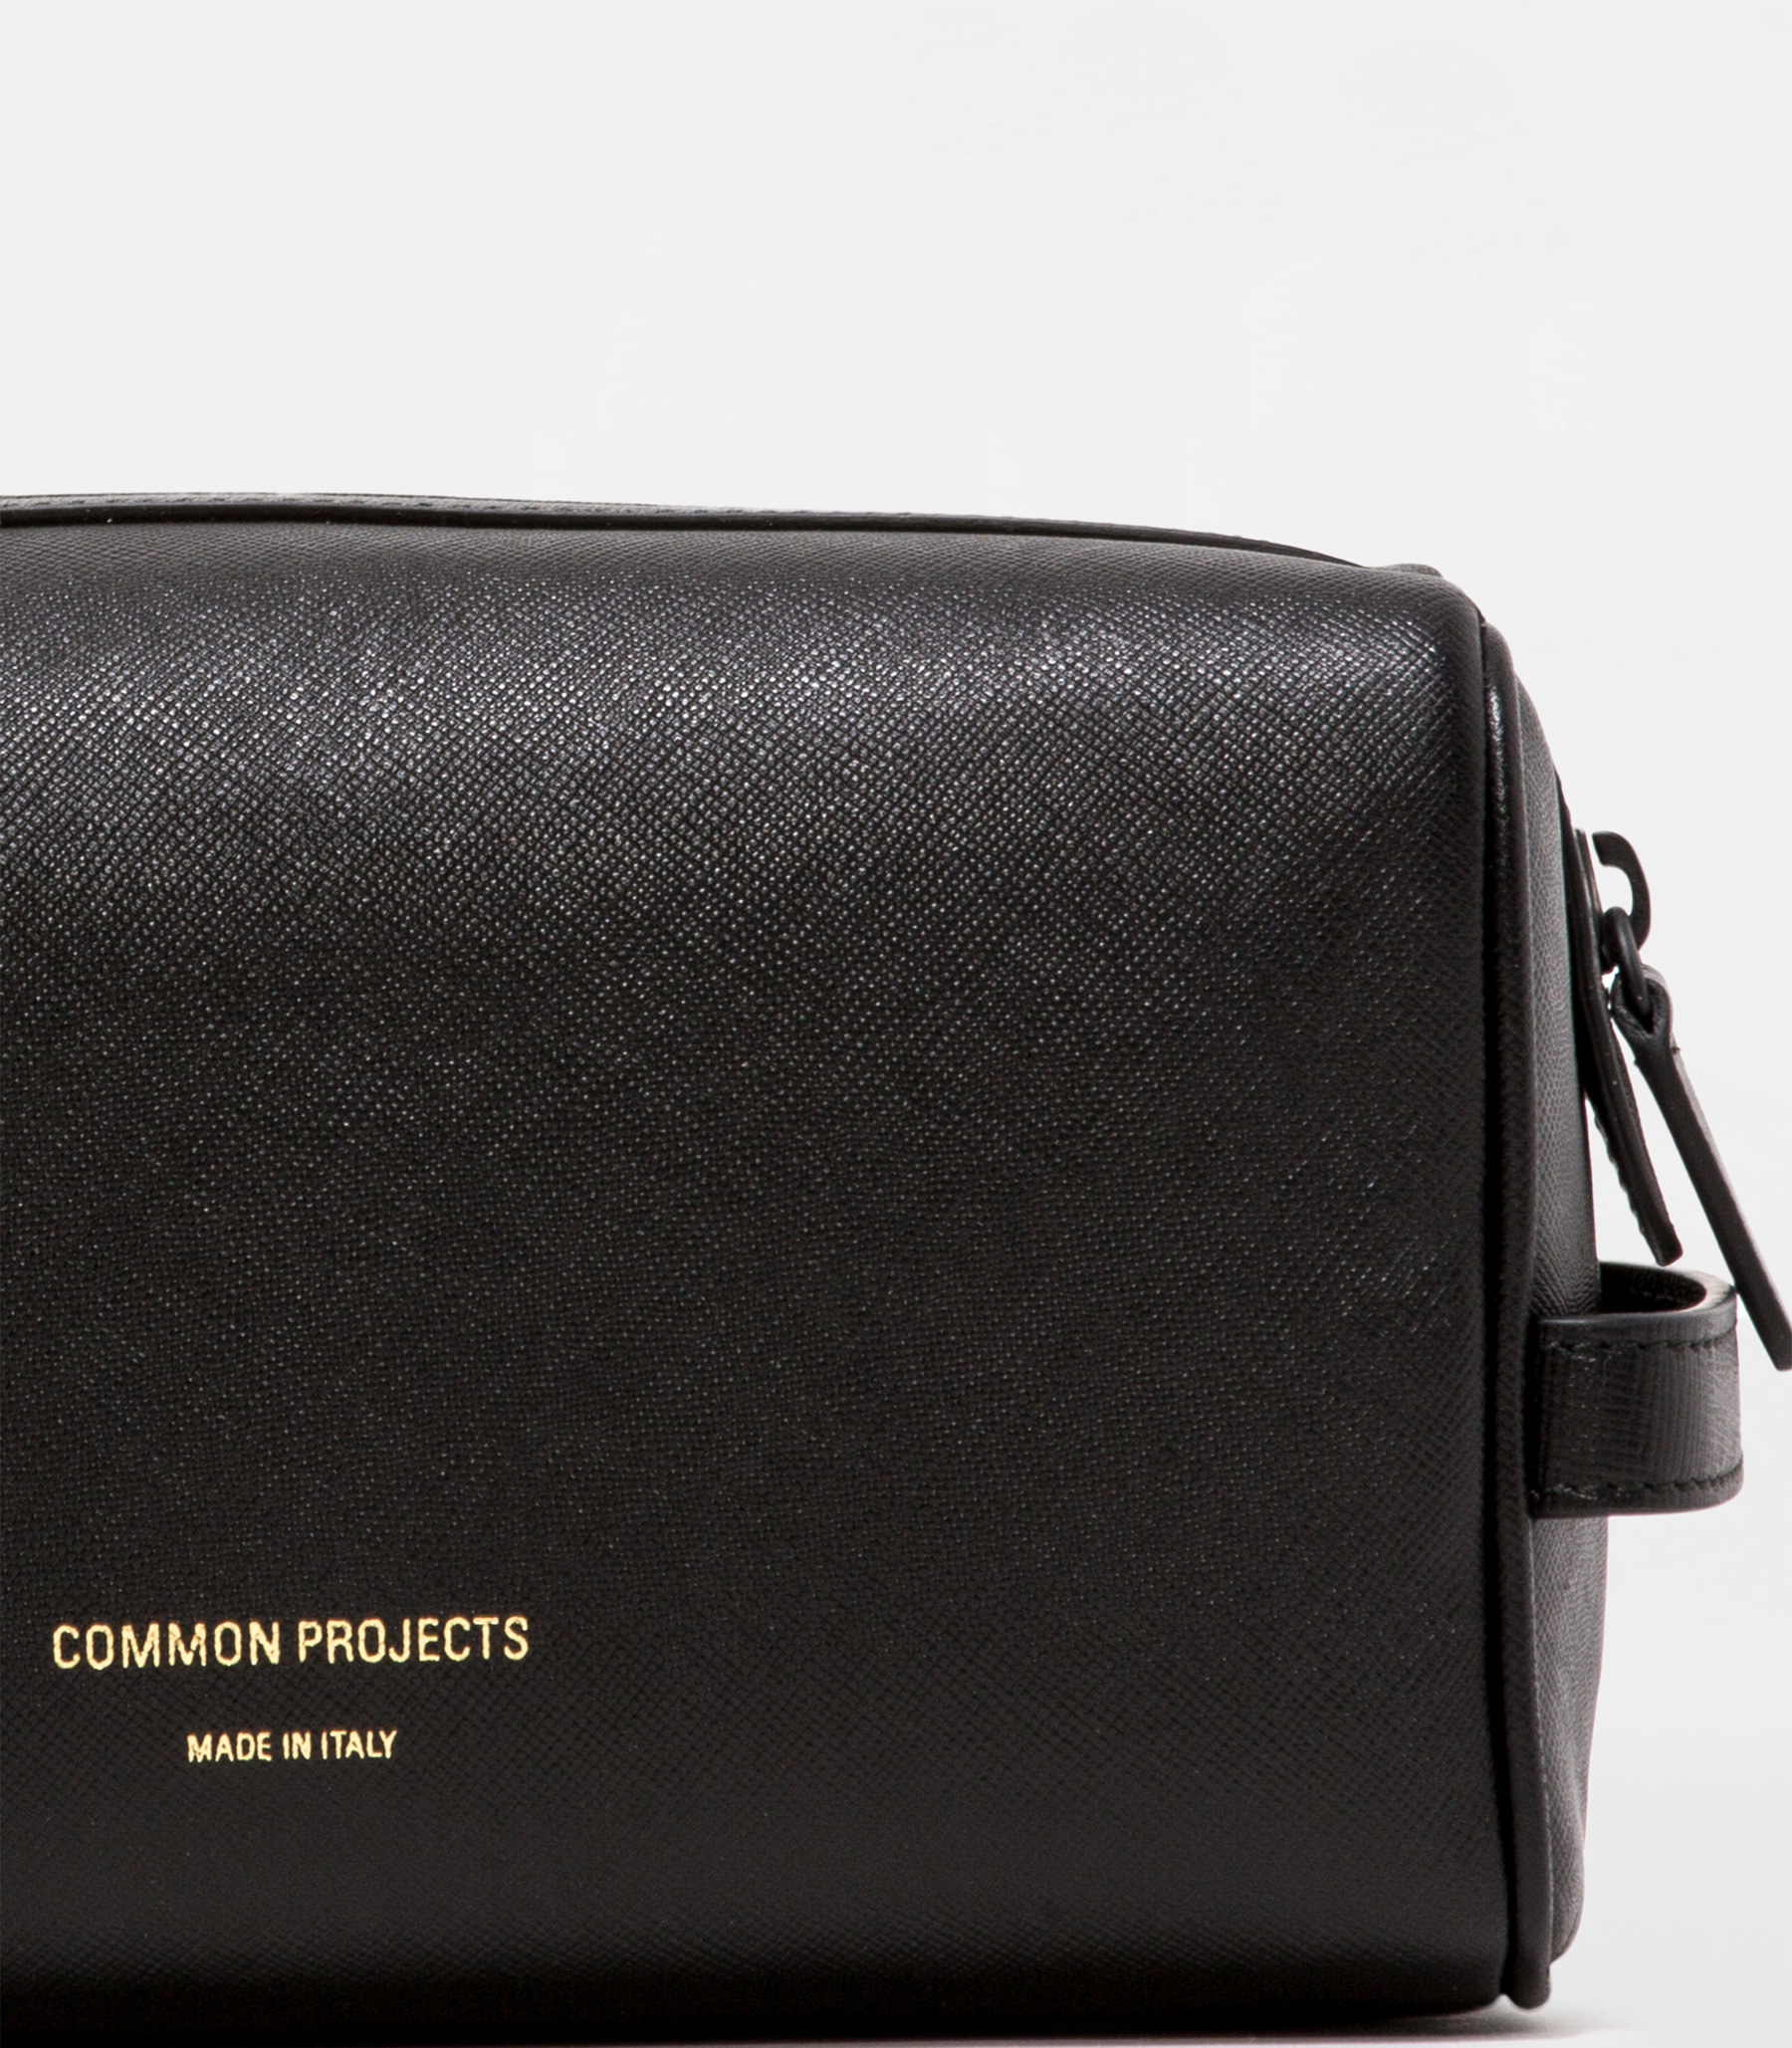 19f4cbd4f8 COMMON PROJECTS TOILETRY BEAUTY CASE COLOR BLACK